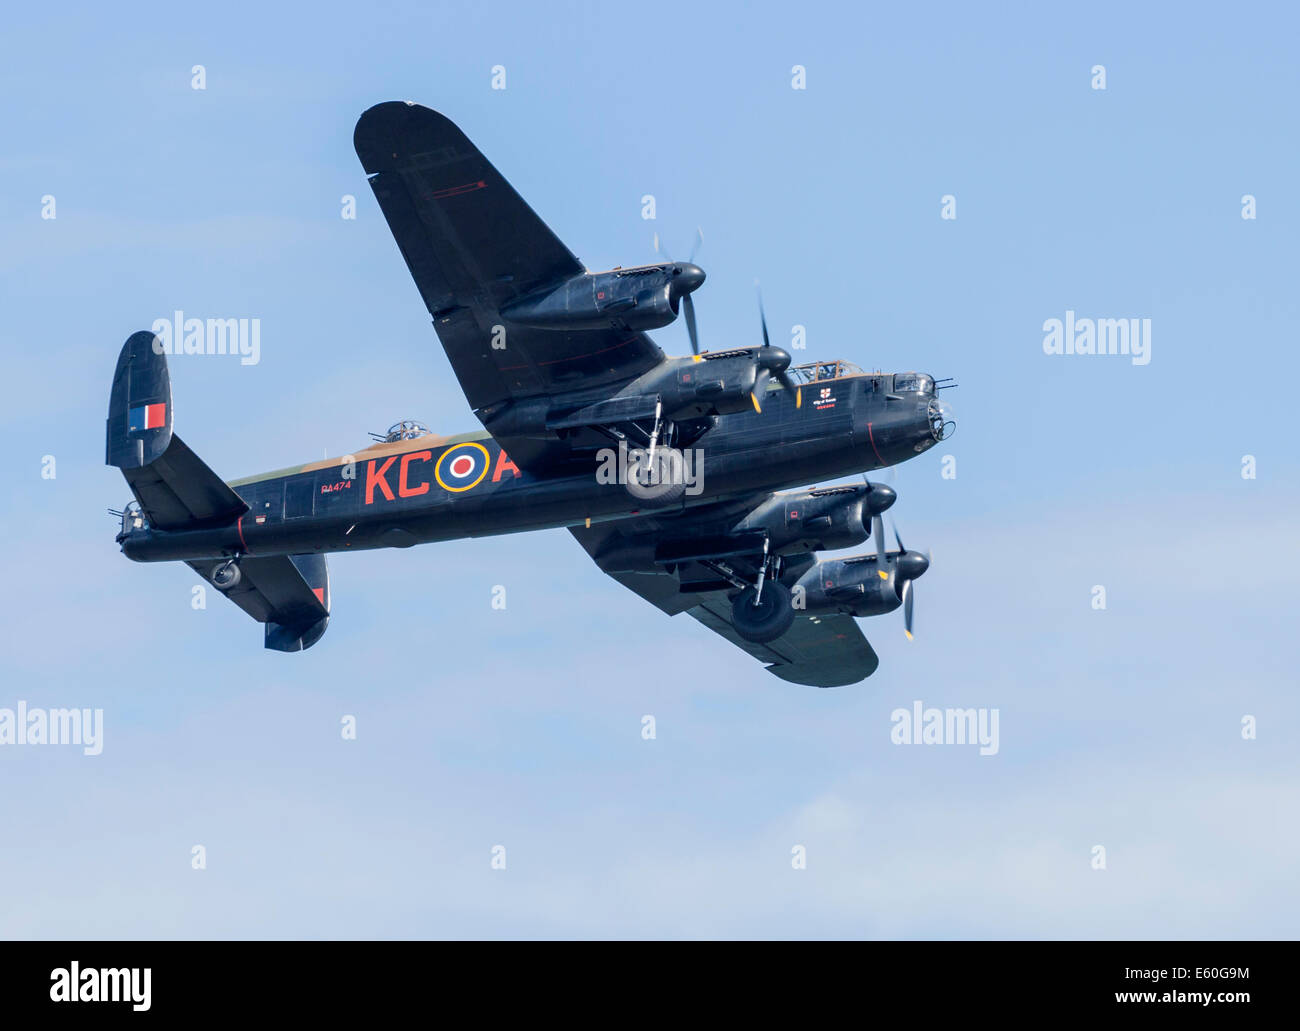 Newcastle, Co. Down, Northern Ireland, UK. 9th August 2014. Festival of Flight. Lancaster Bomber with undercarriage - Stock Image